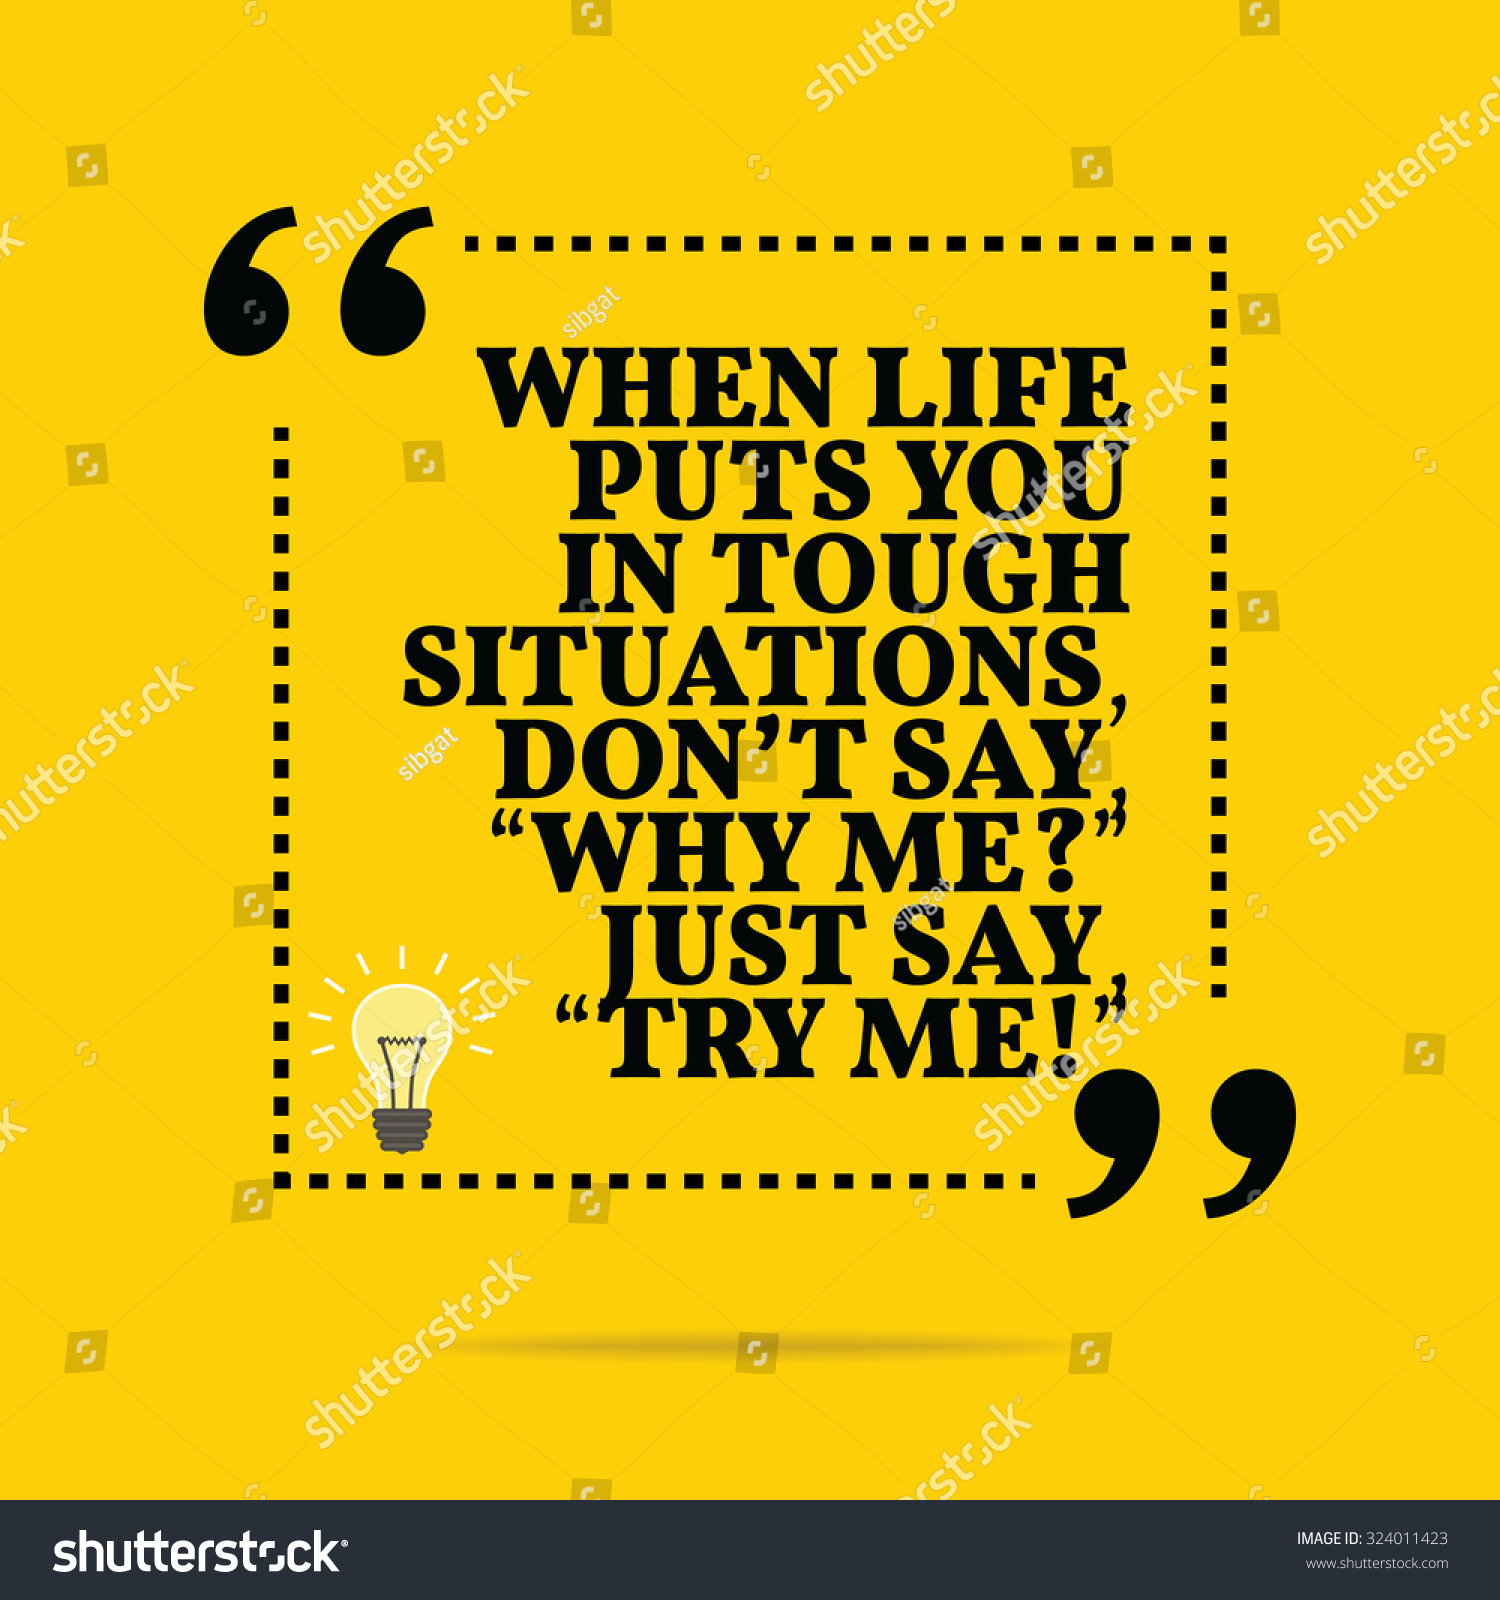 Motivational Inspirational Quotes: Inspirational Motivational Quote When Life Puts Stock